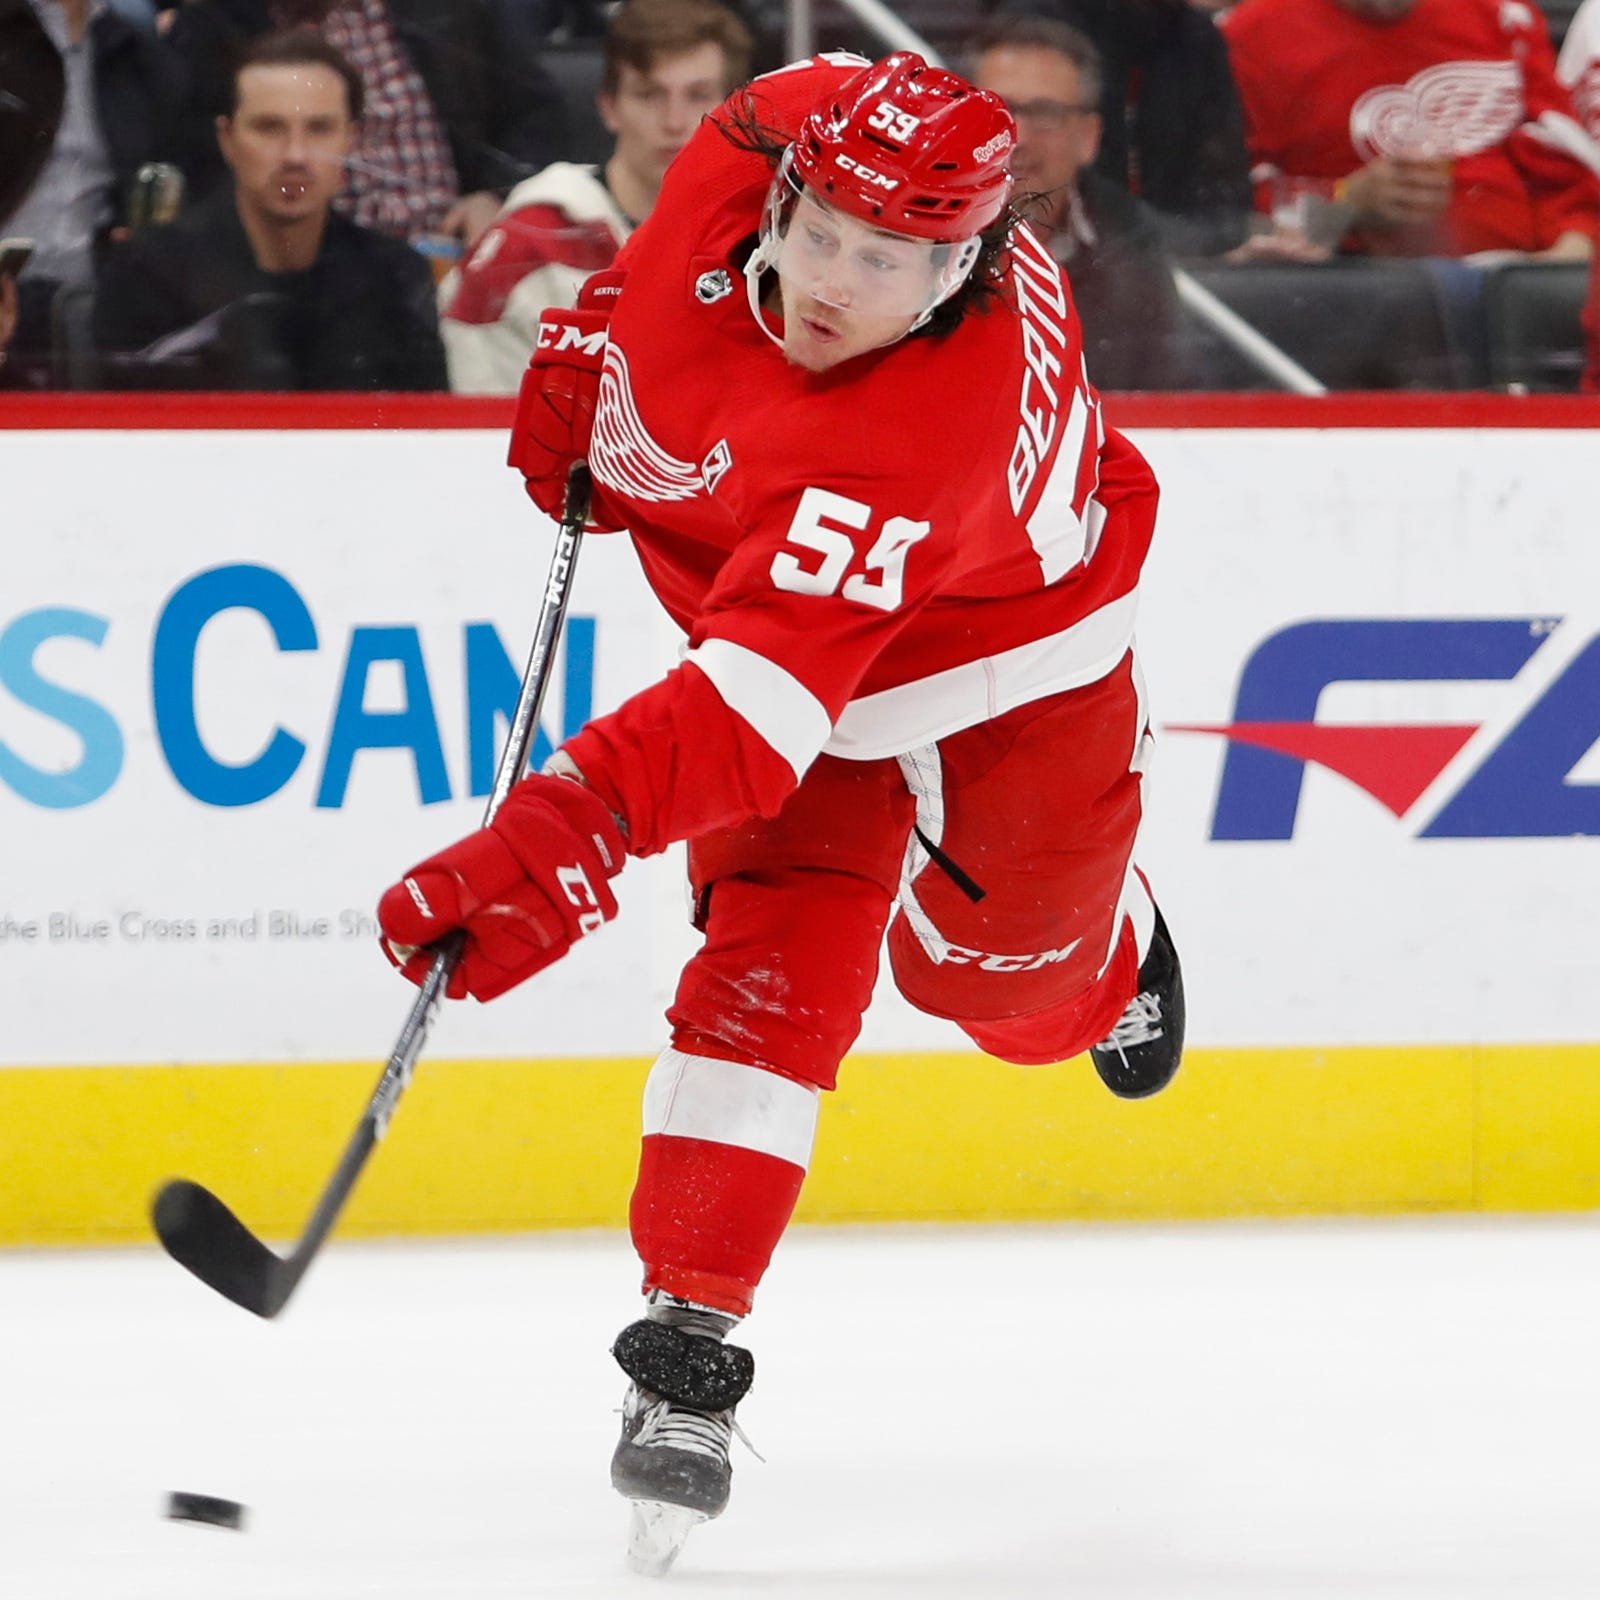 Detroit Red Wings' hot streak continues with win over Penguins